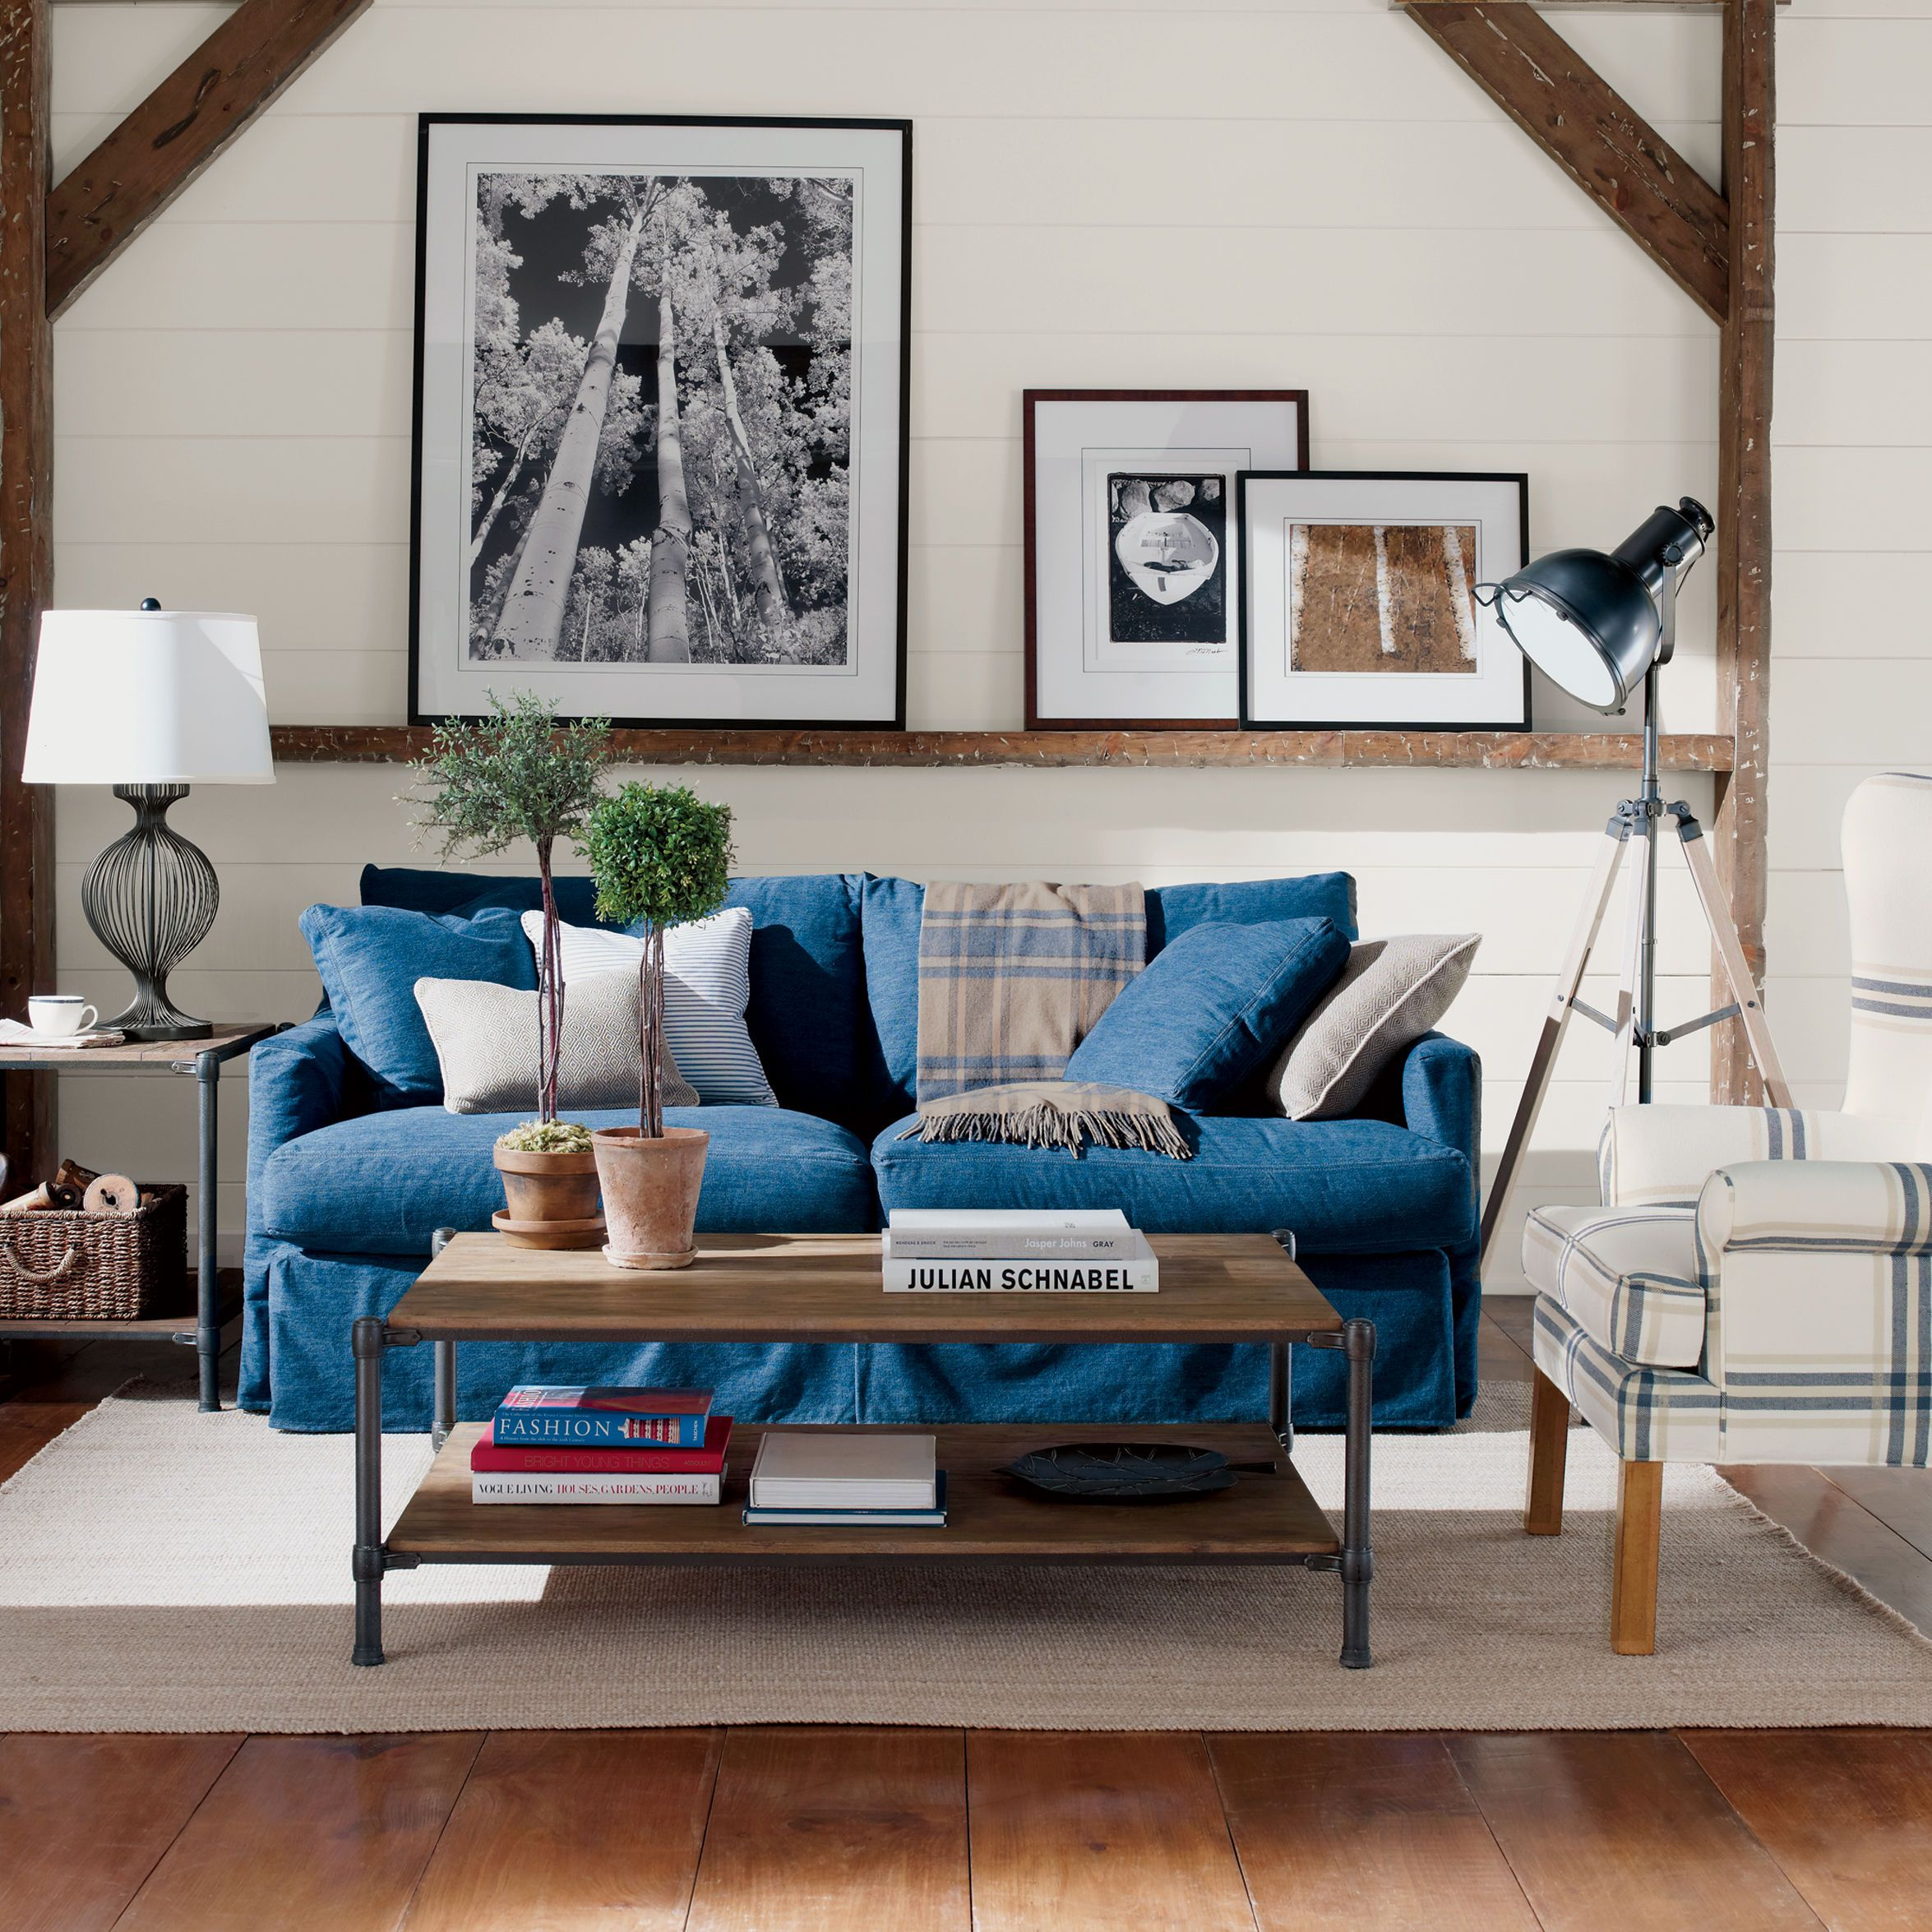 vintage country living rooms. Ethan Allen Vintage Country Living Room Idea. Denim Sofa With Rustic Tables. Rooms